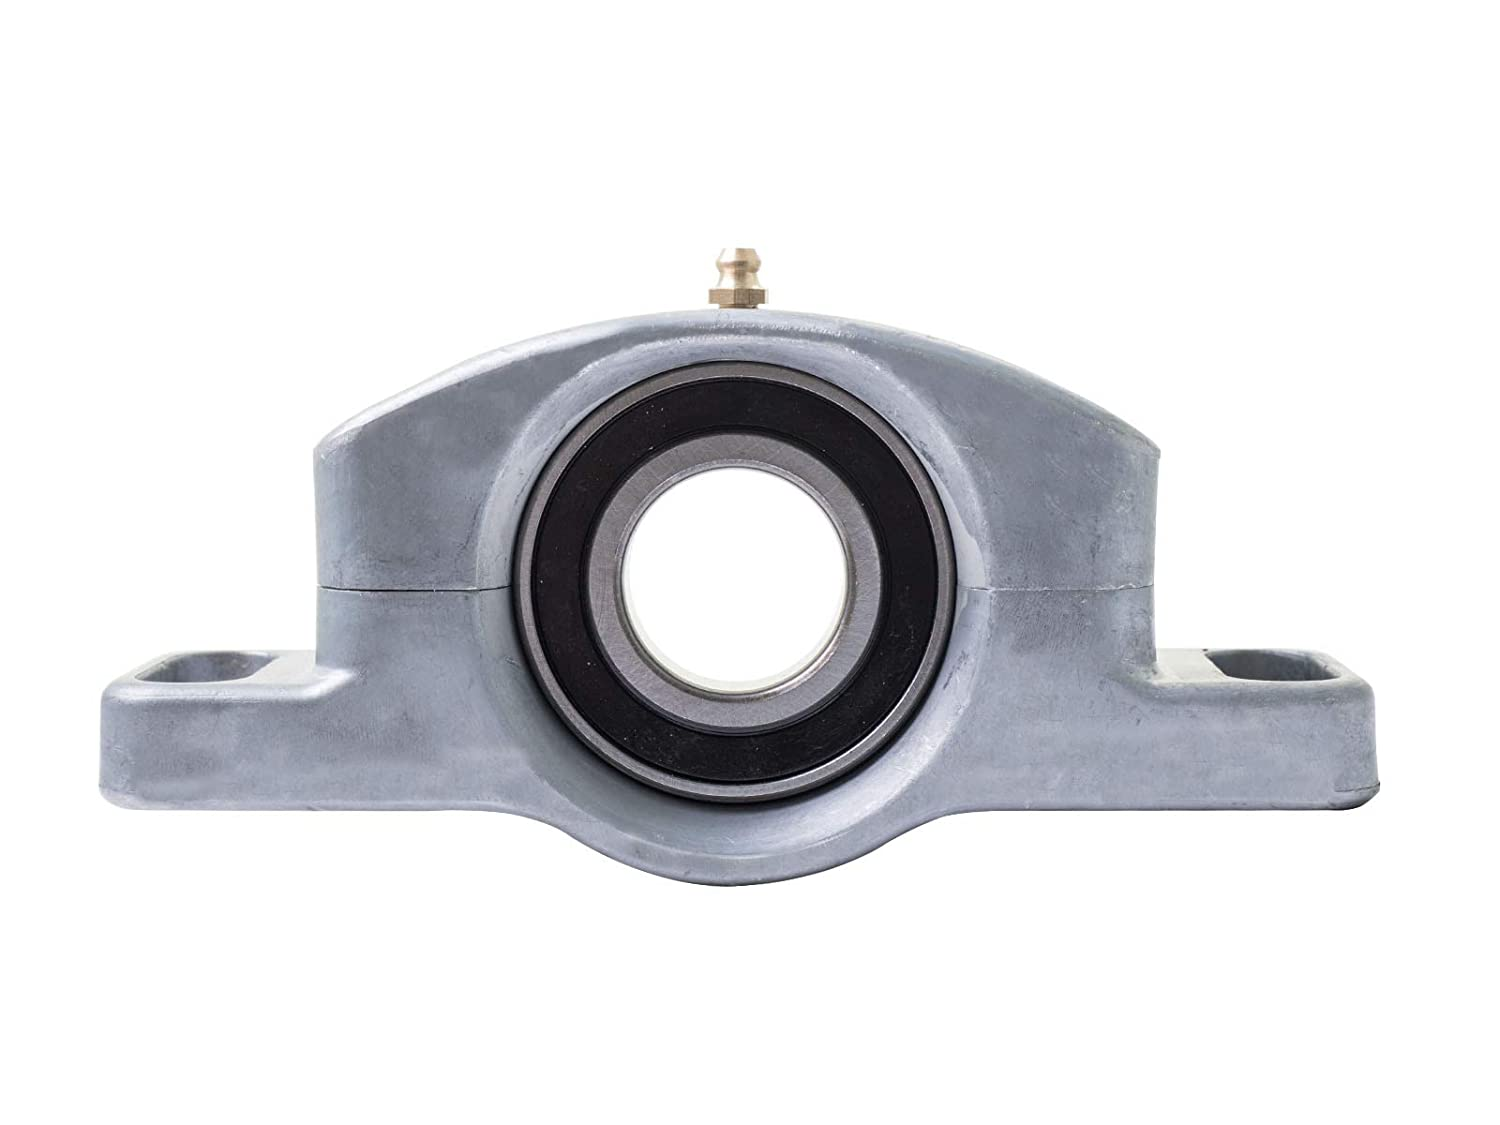 SuperATV Heavy Duty Cast Aluminum Carrier Bearing for Polaris RZR S 1000 2016+ Greaseable and Self Aligning! S4 1000